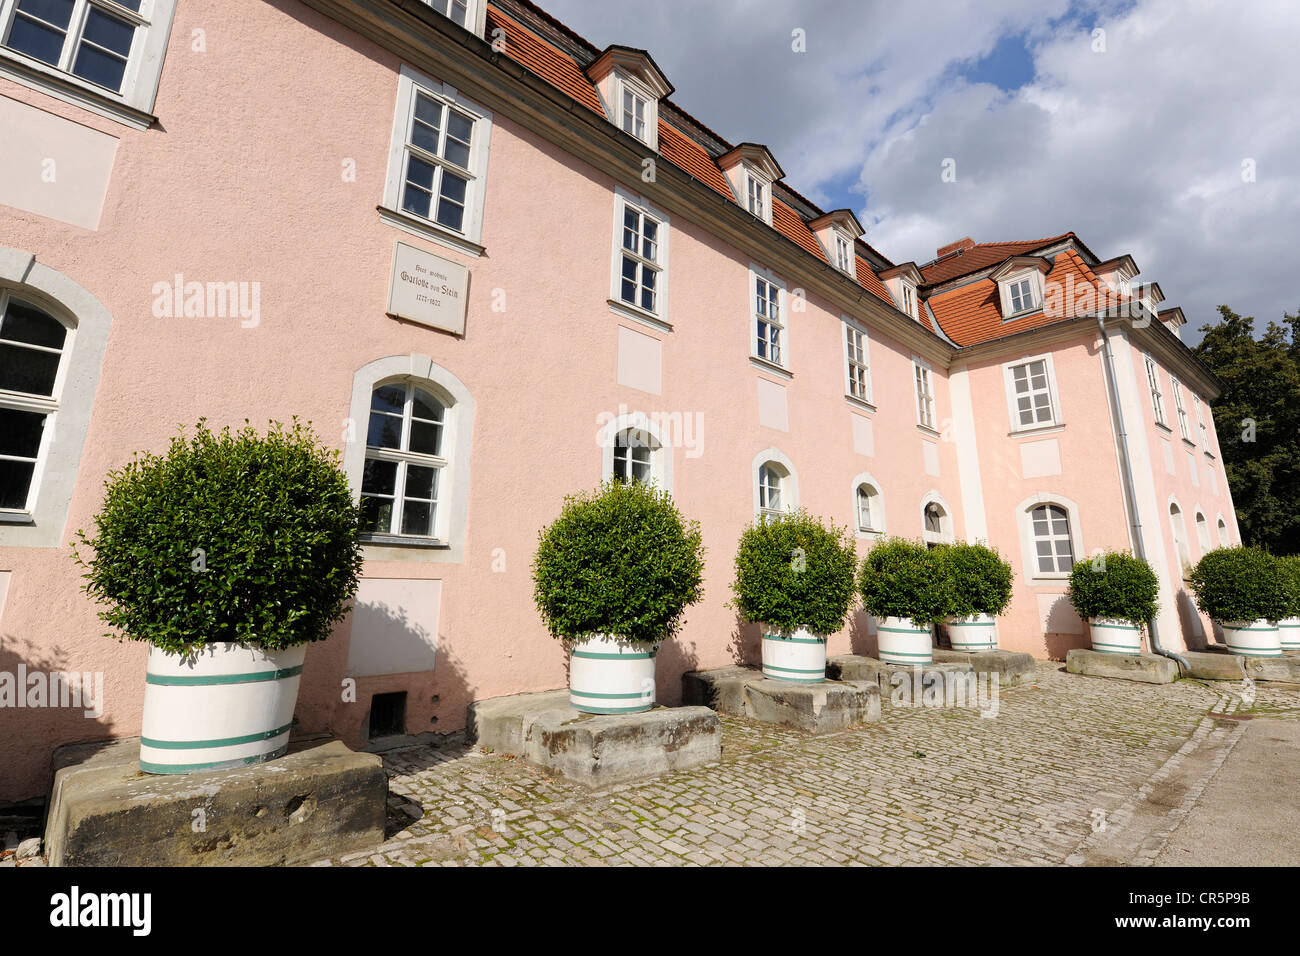 Former residence of Charlotte von Stein in Weimar, Thuringia, Germany, Europe - Stock Image